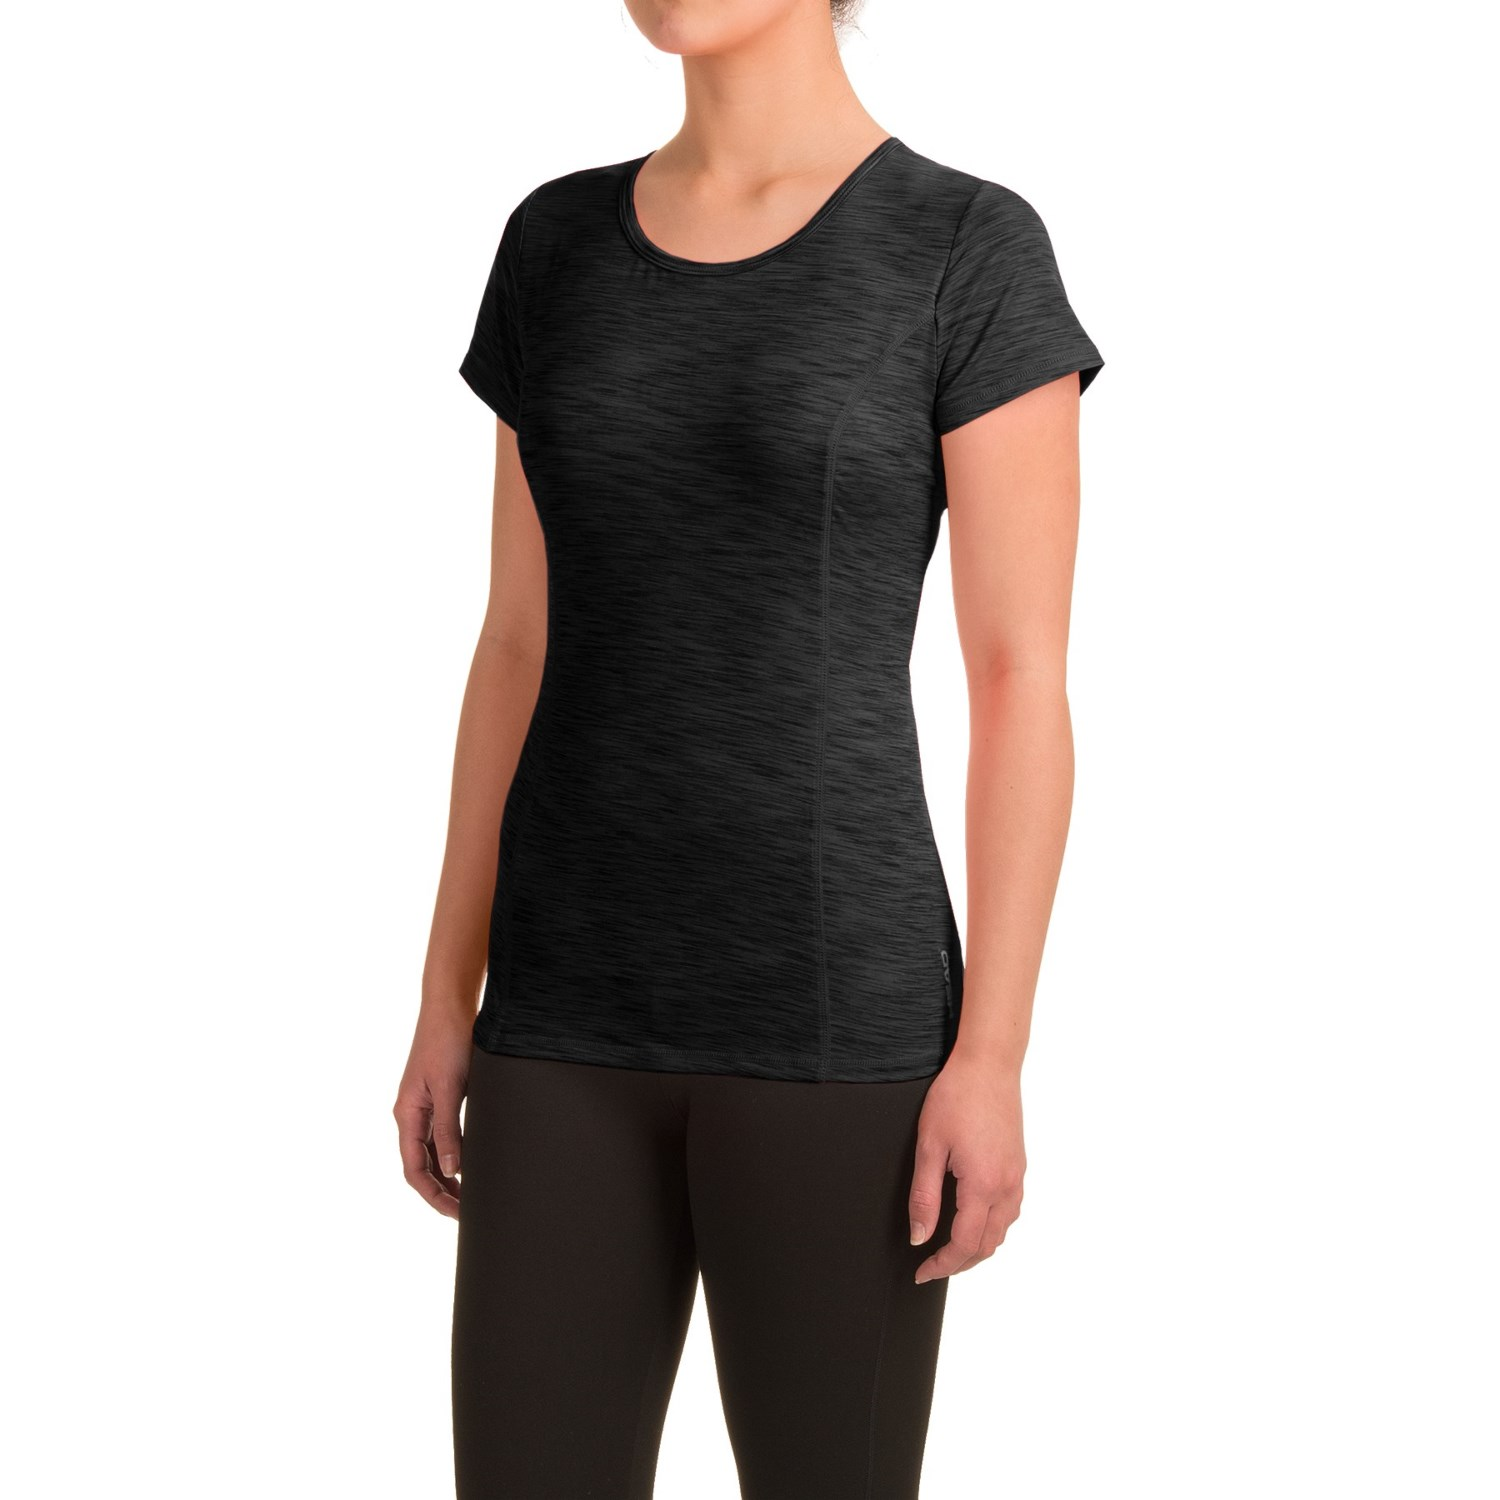 Shop for customizable Slim Fit clothing on Zazzle. Check out our t-shirts, polo shirts, hoodies, & more great items. Start browsing today!